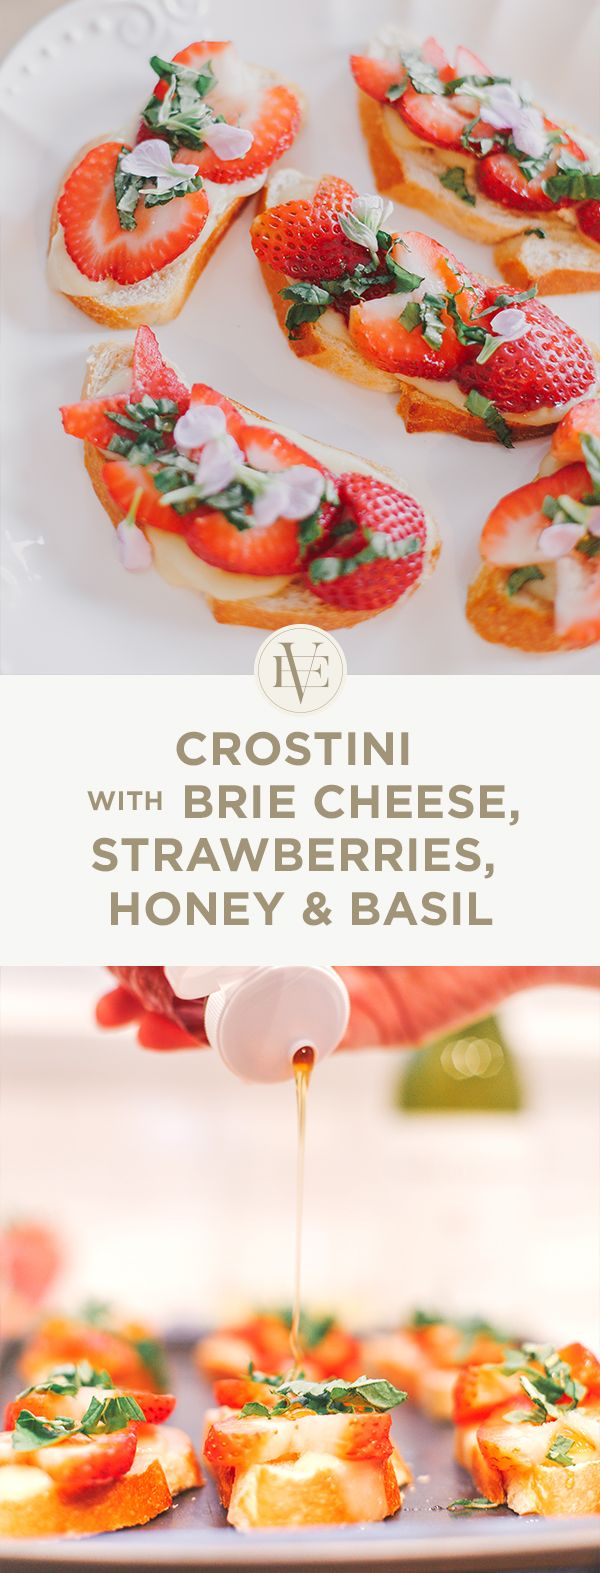 Crostini with Brie Cheese features fresh strawberries, honey and basil ...